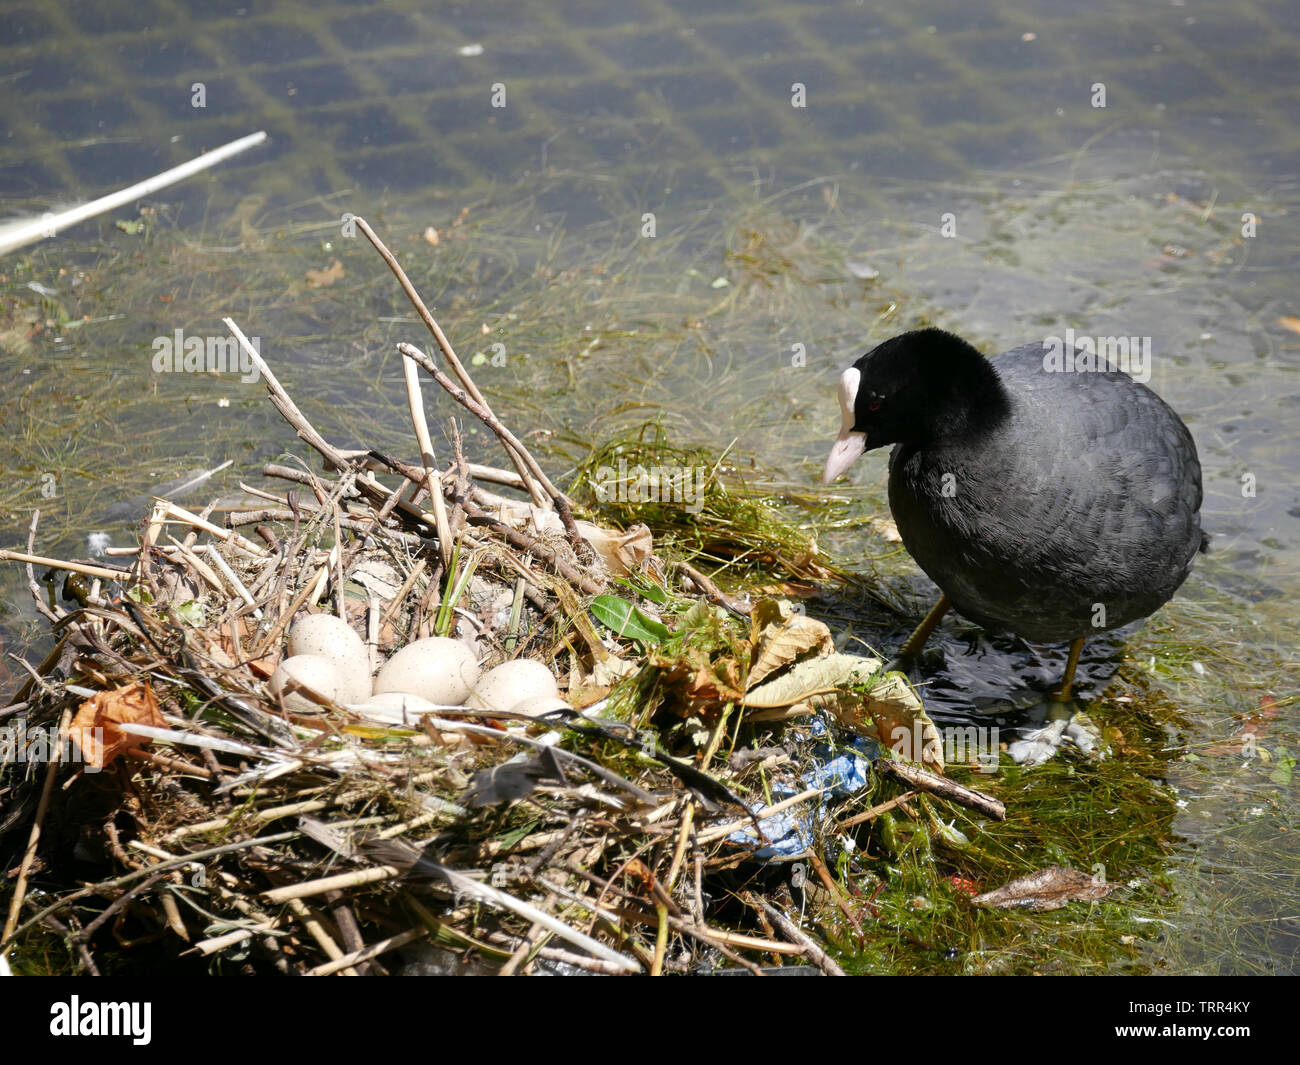 Adult coot -Fulica atra with a clutch of eggs in a nest at Hyde Park, London, UK - Stock Image